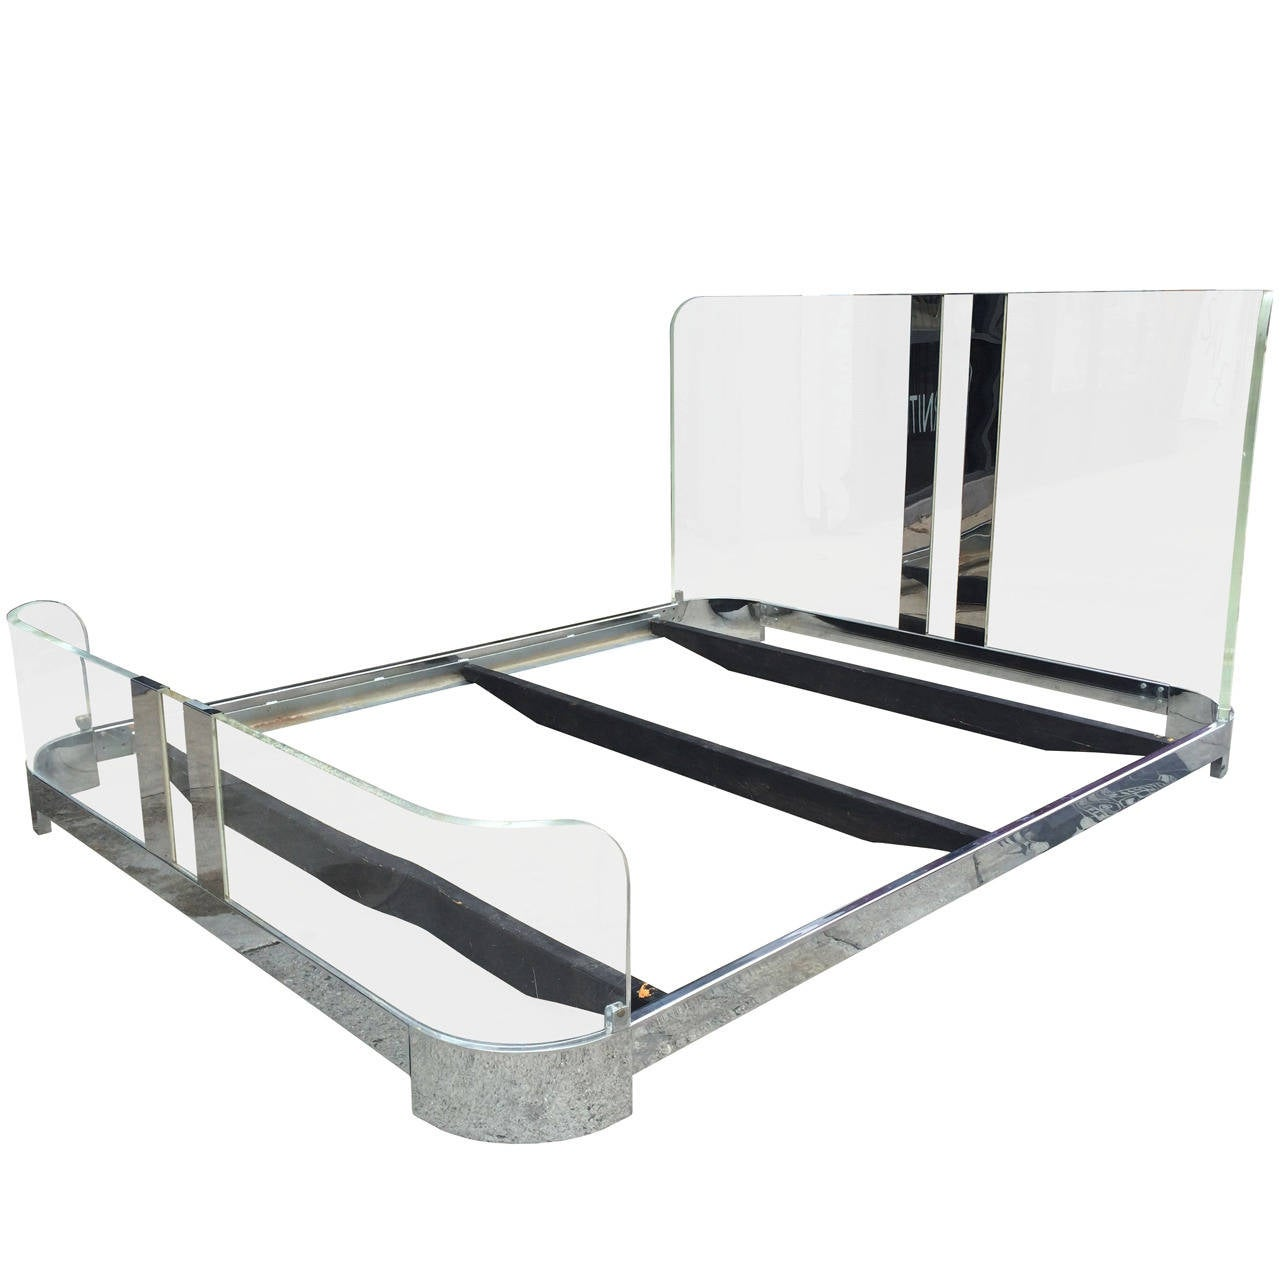 queen-size bed in lucite and nickelcharles hollis jones